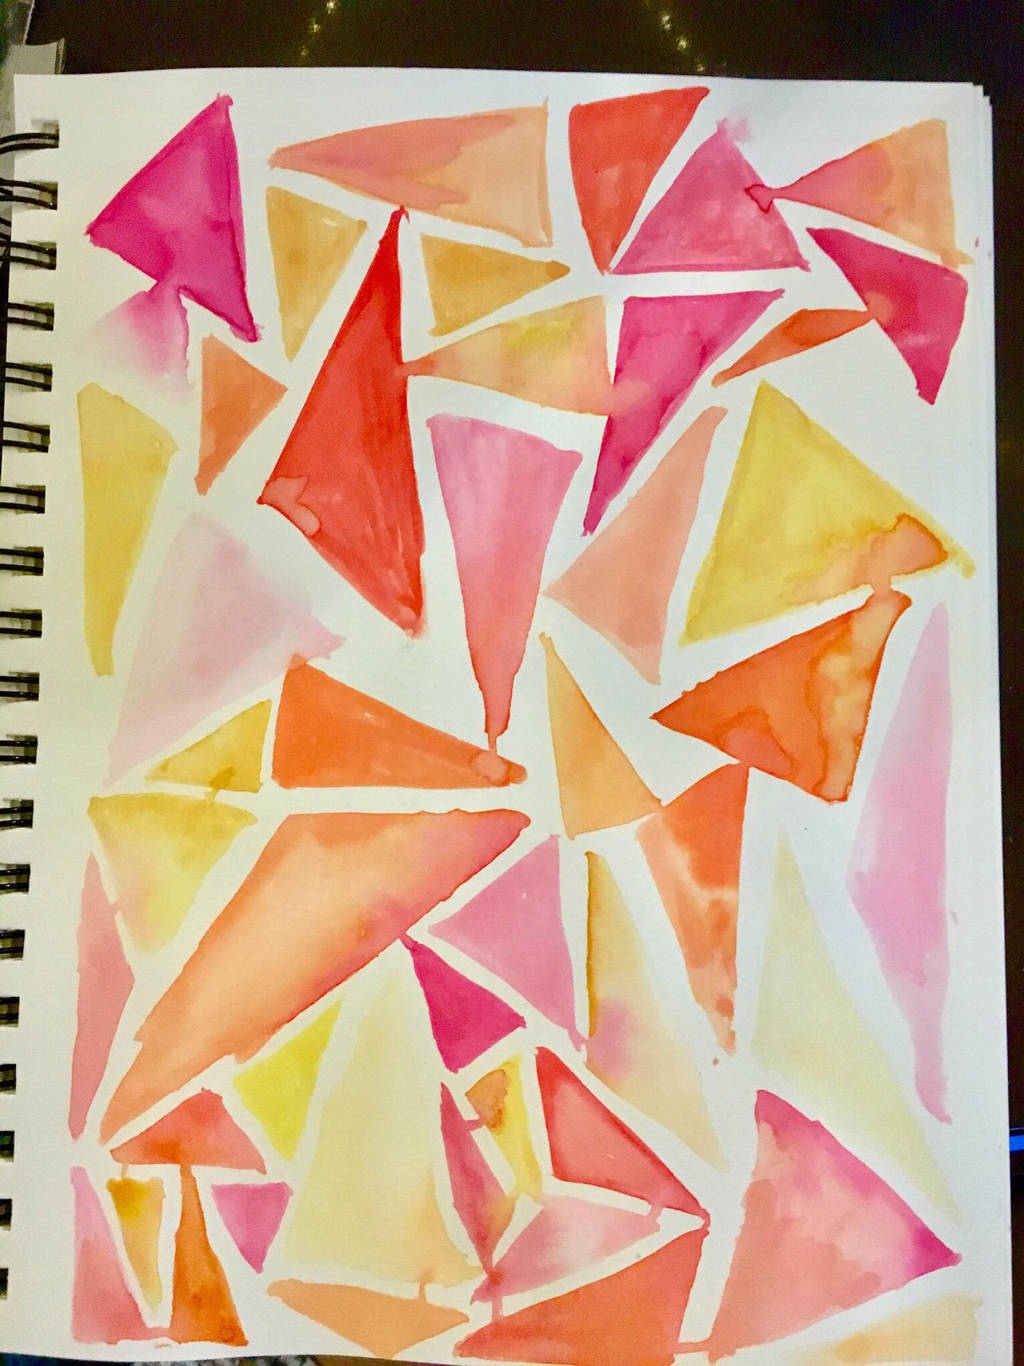 Toasty triangles by kittenen